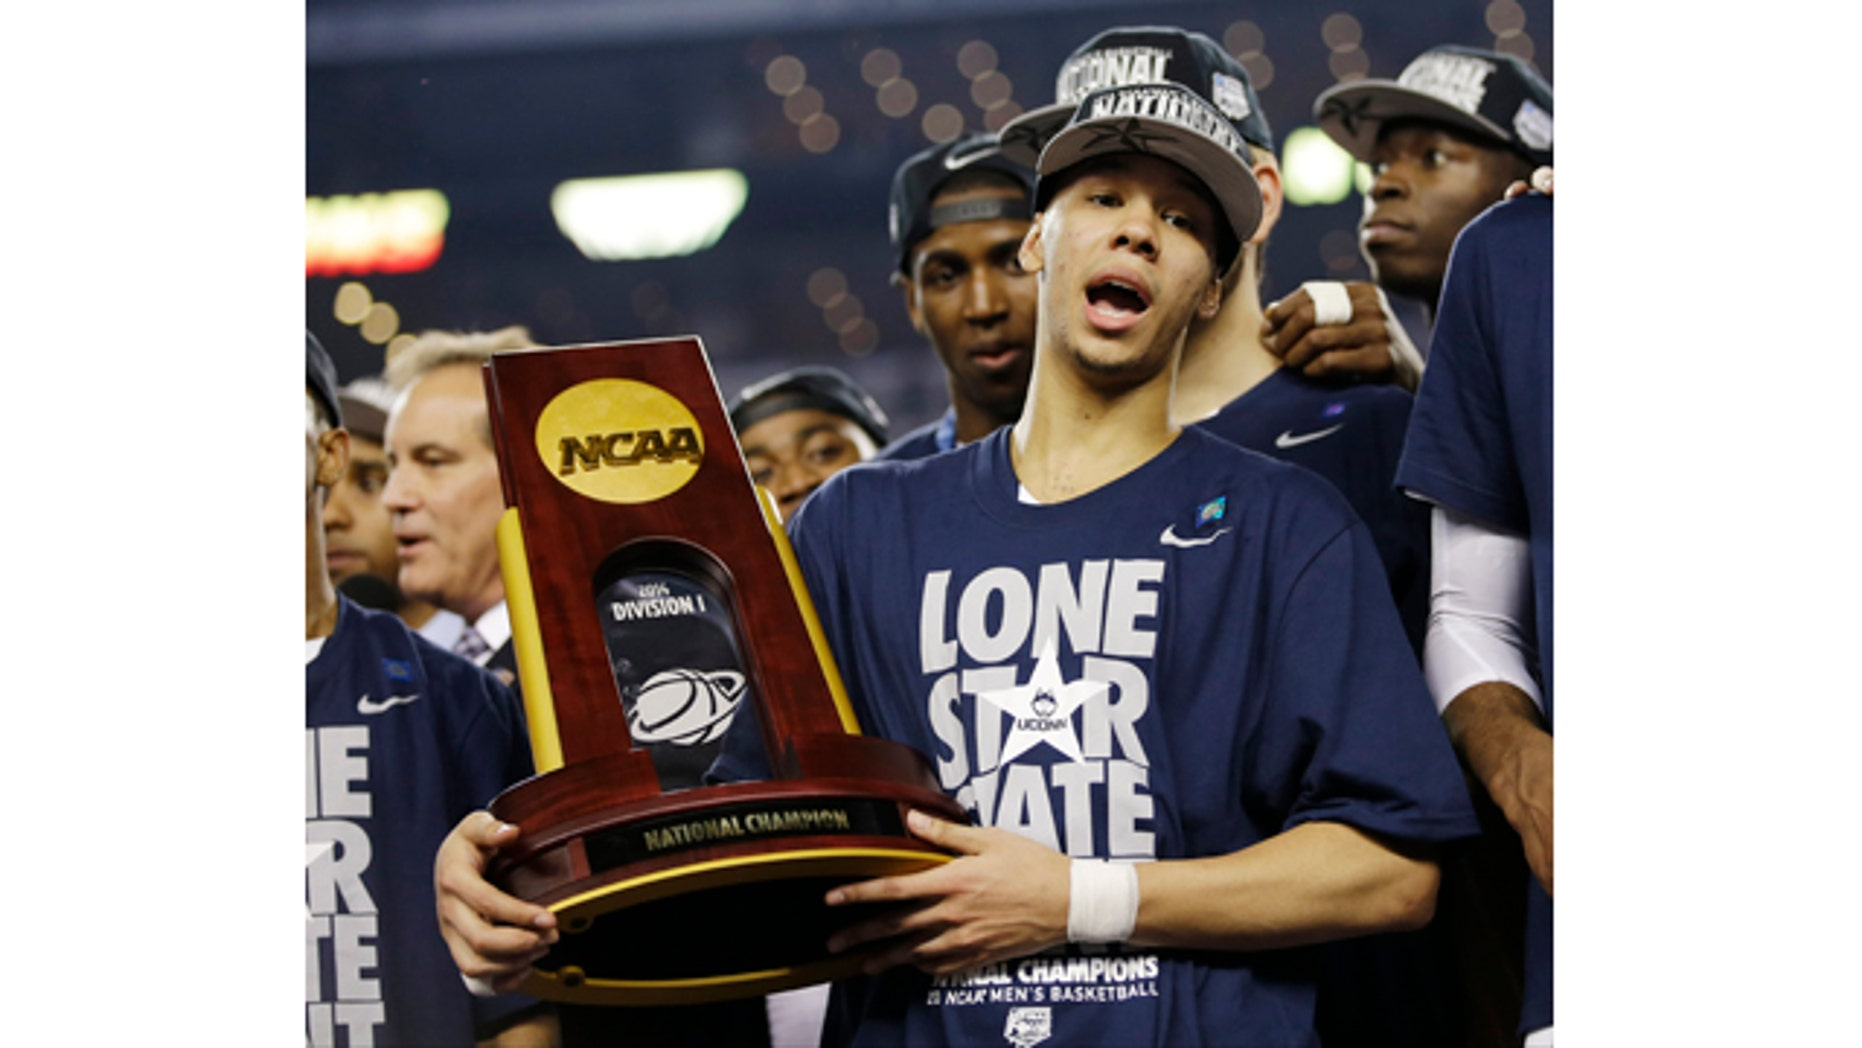 April 7, 2014: Connecticut guard Shabazz Napier holds the championship trophy after defeating Kentucky 60-54, at the NCAA Final Four tournament college basketball championship game in Arlington, Texas. (AP Photo/David J. Phillip)